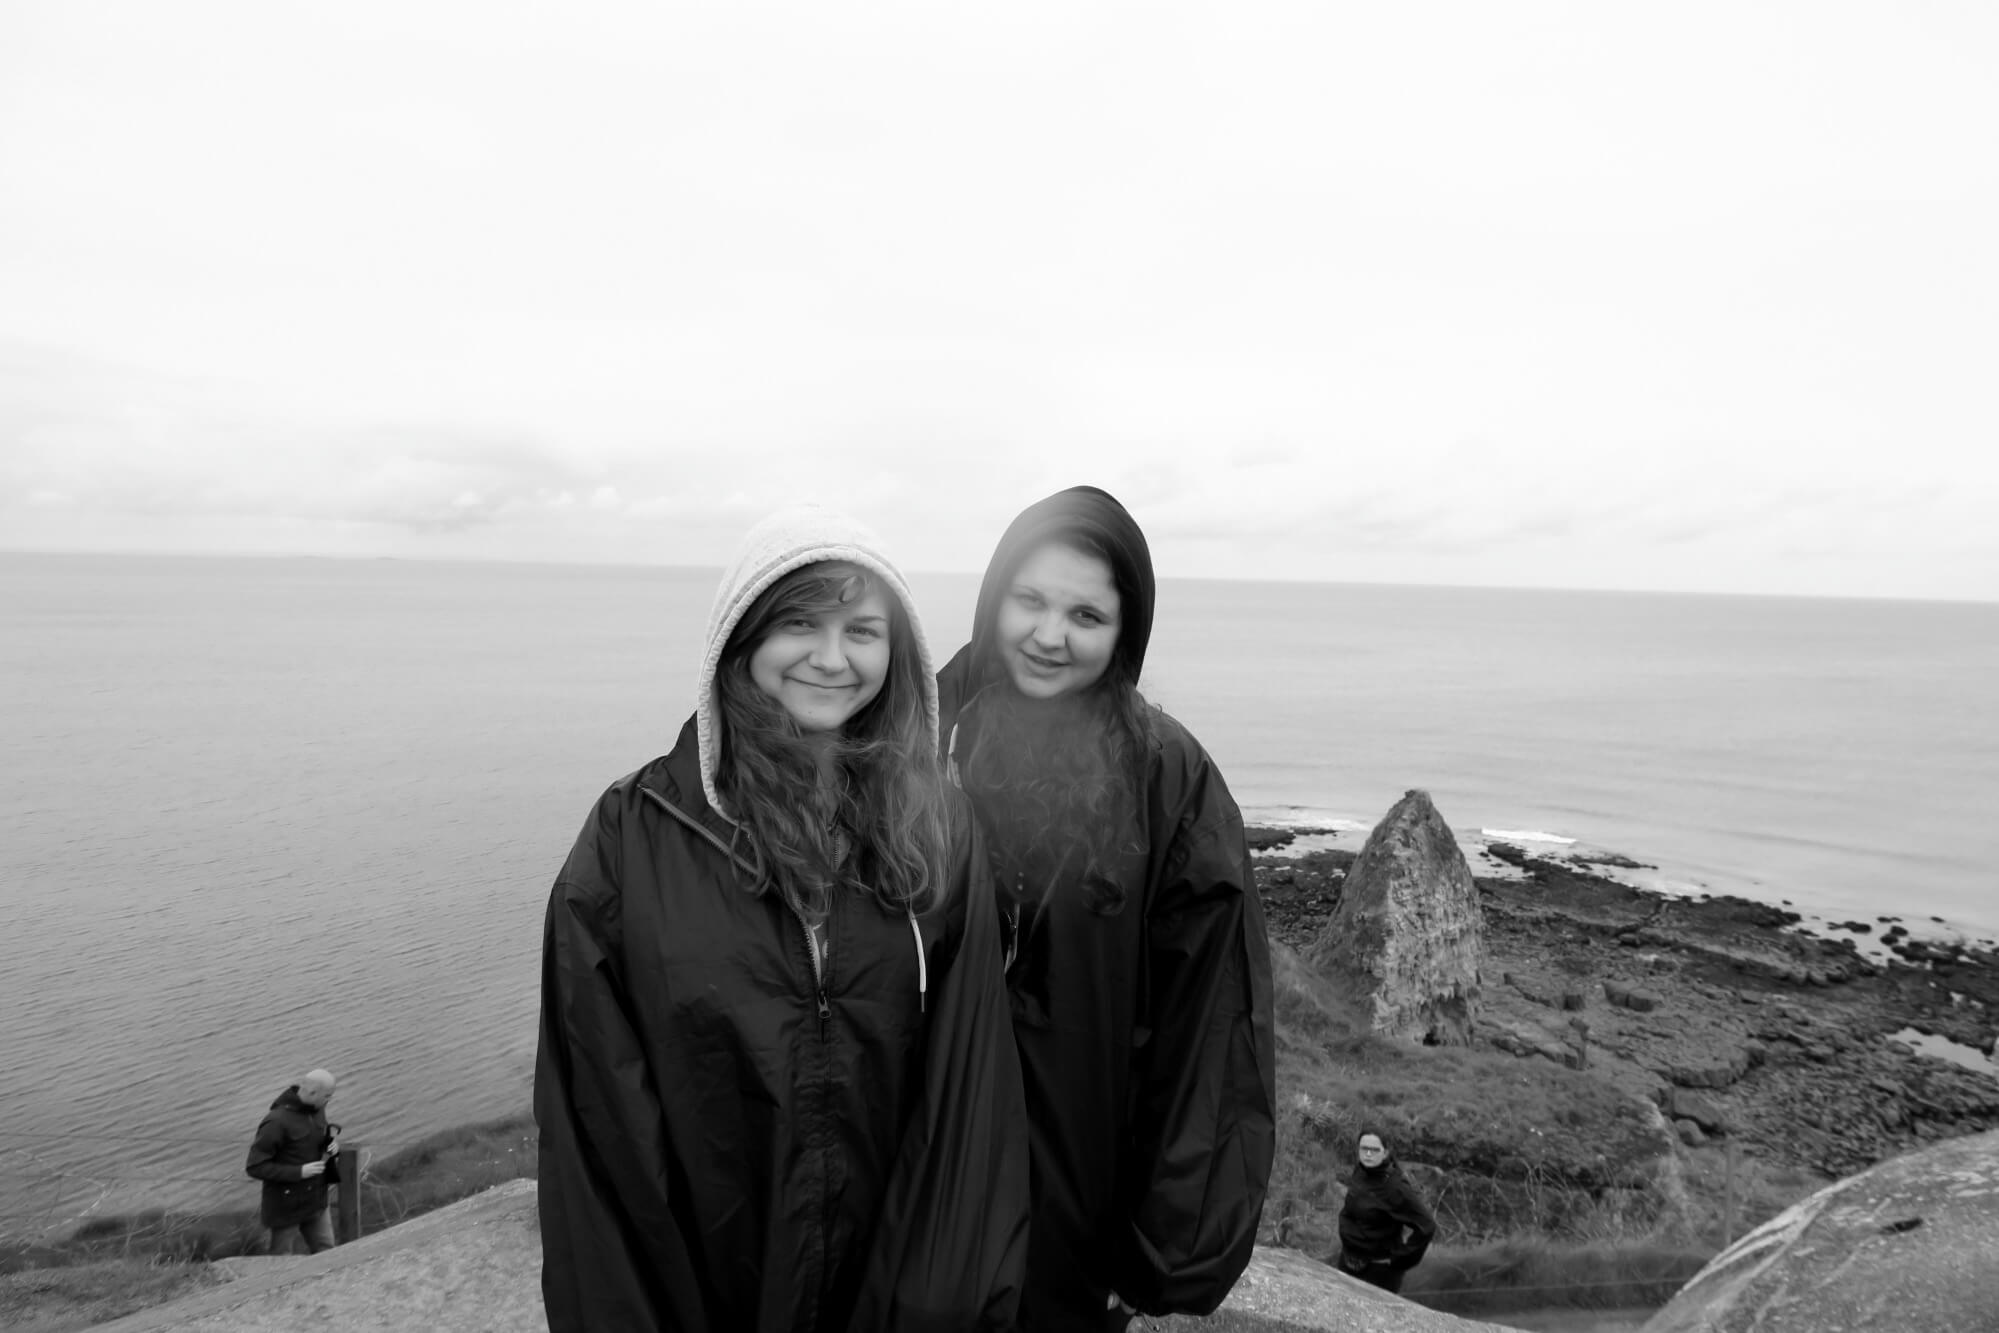 Me and my Sister at Pointe Du Hoc